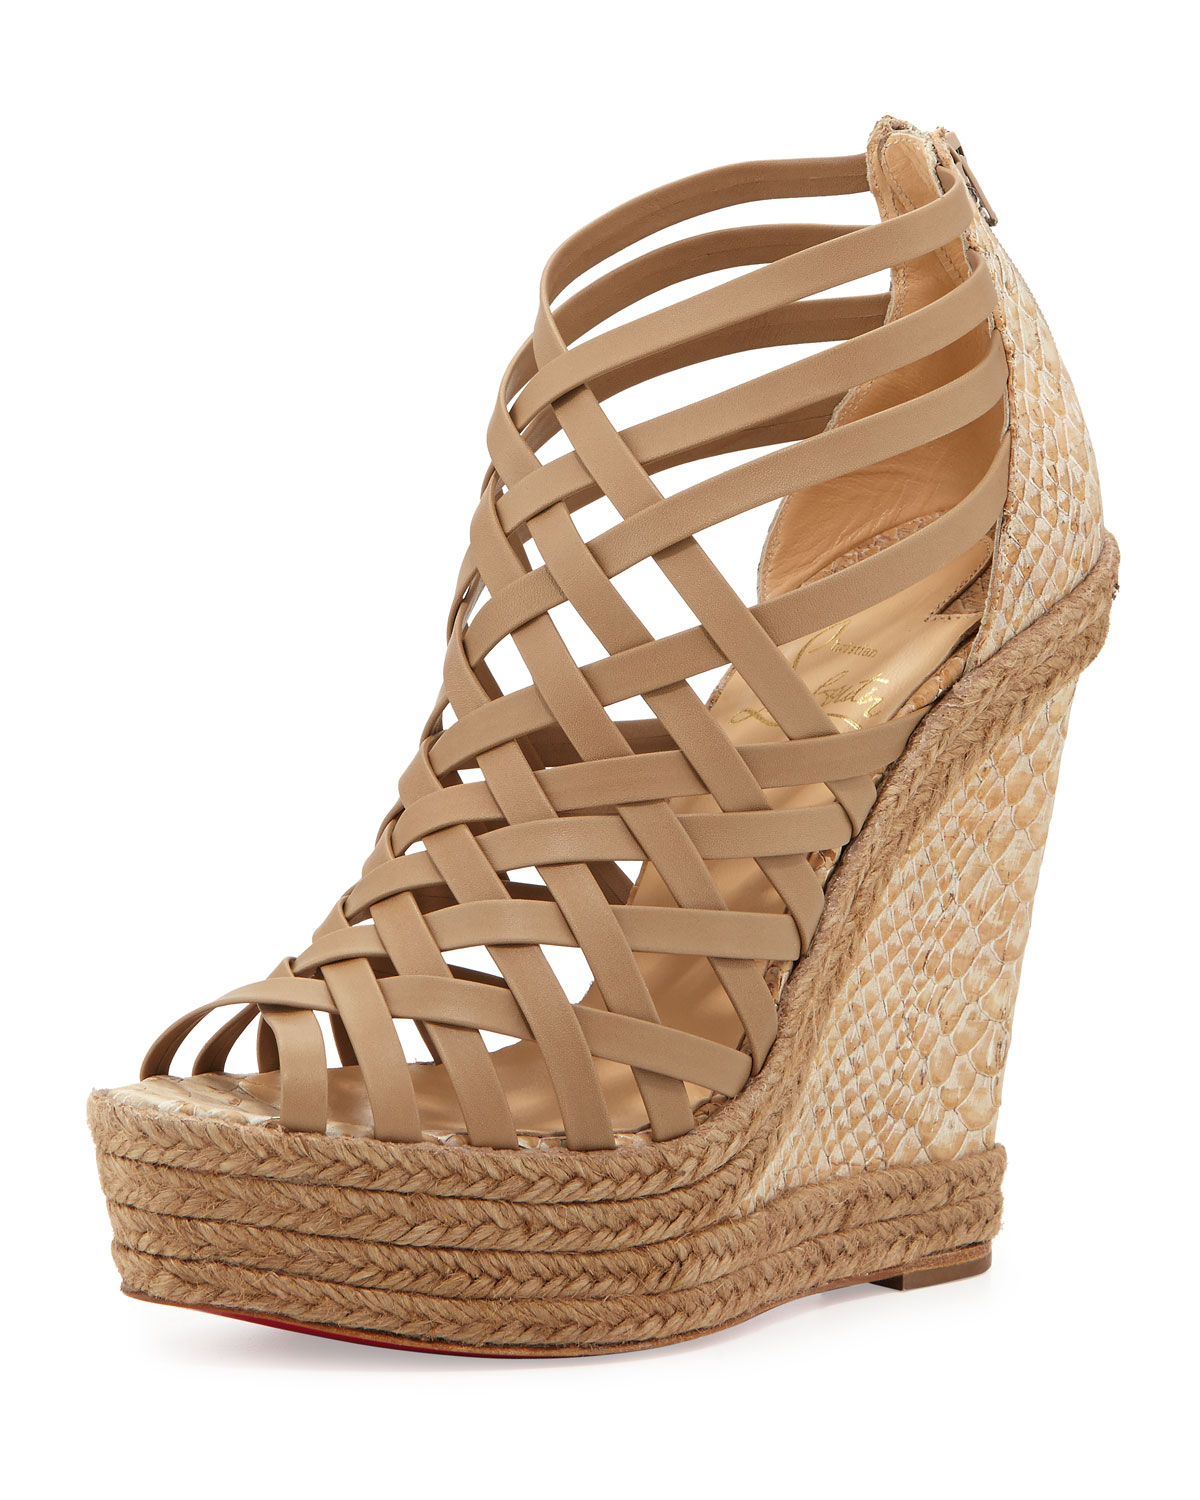 christian louboutin slide wedges Gold metallic canvas | cosmetics ...